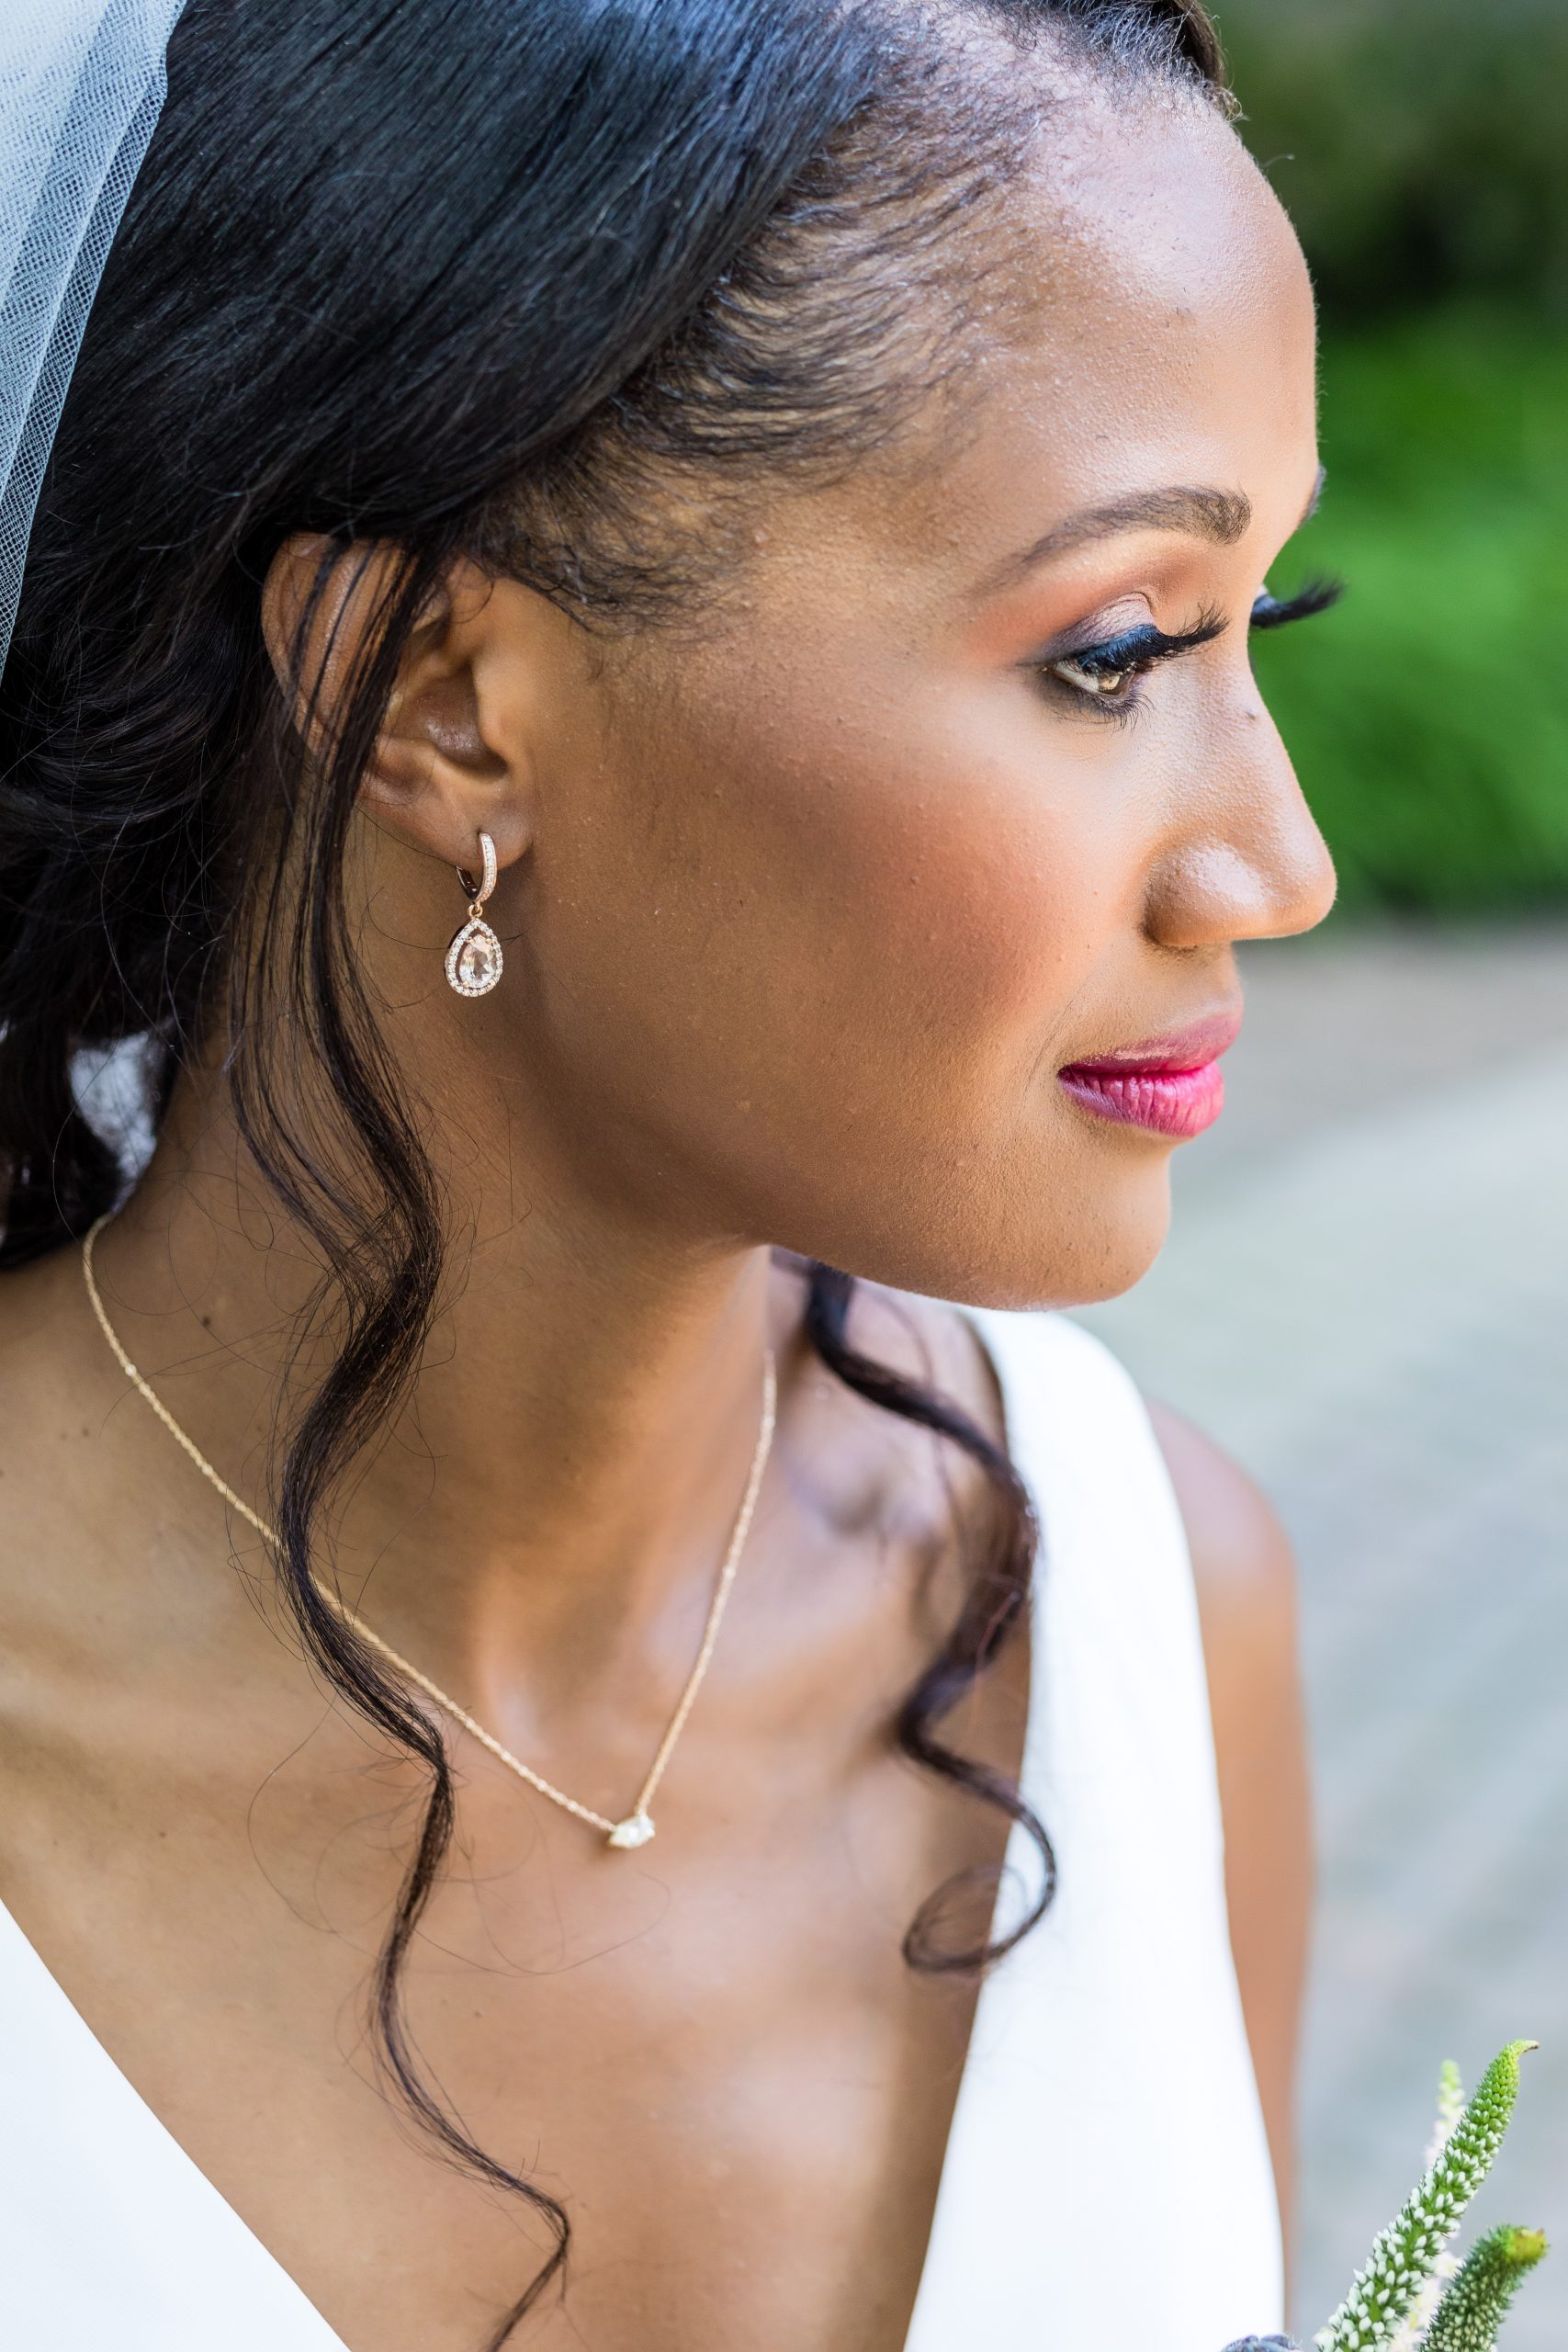 Gorgeous rose gold tear drop earrings of the bride at the the blushing bride and groom enthralled in love at the Michener Museum styled urban contemporary shoot for Ashley Gerrity Photography this past Summer. Featured on Dream Weddings.